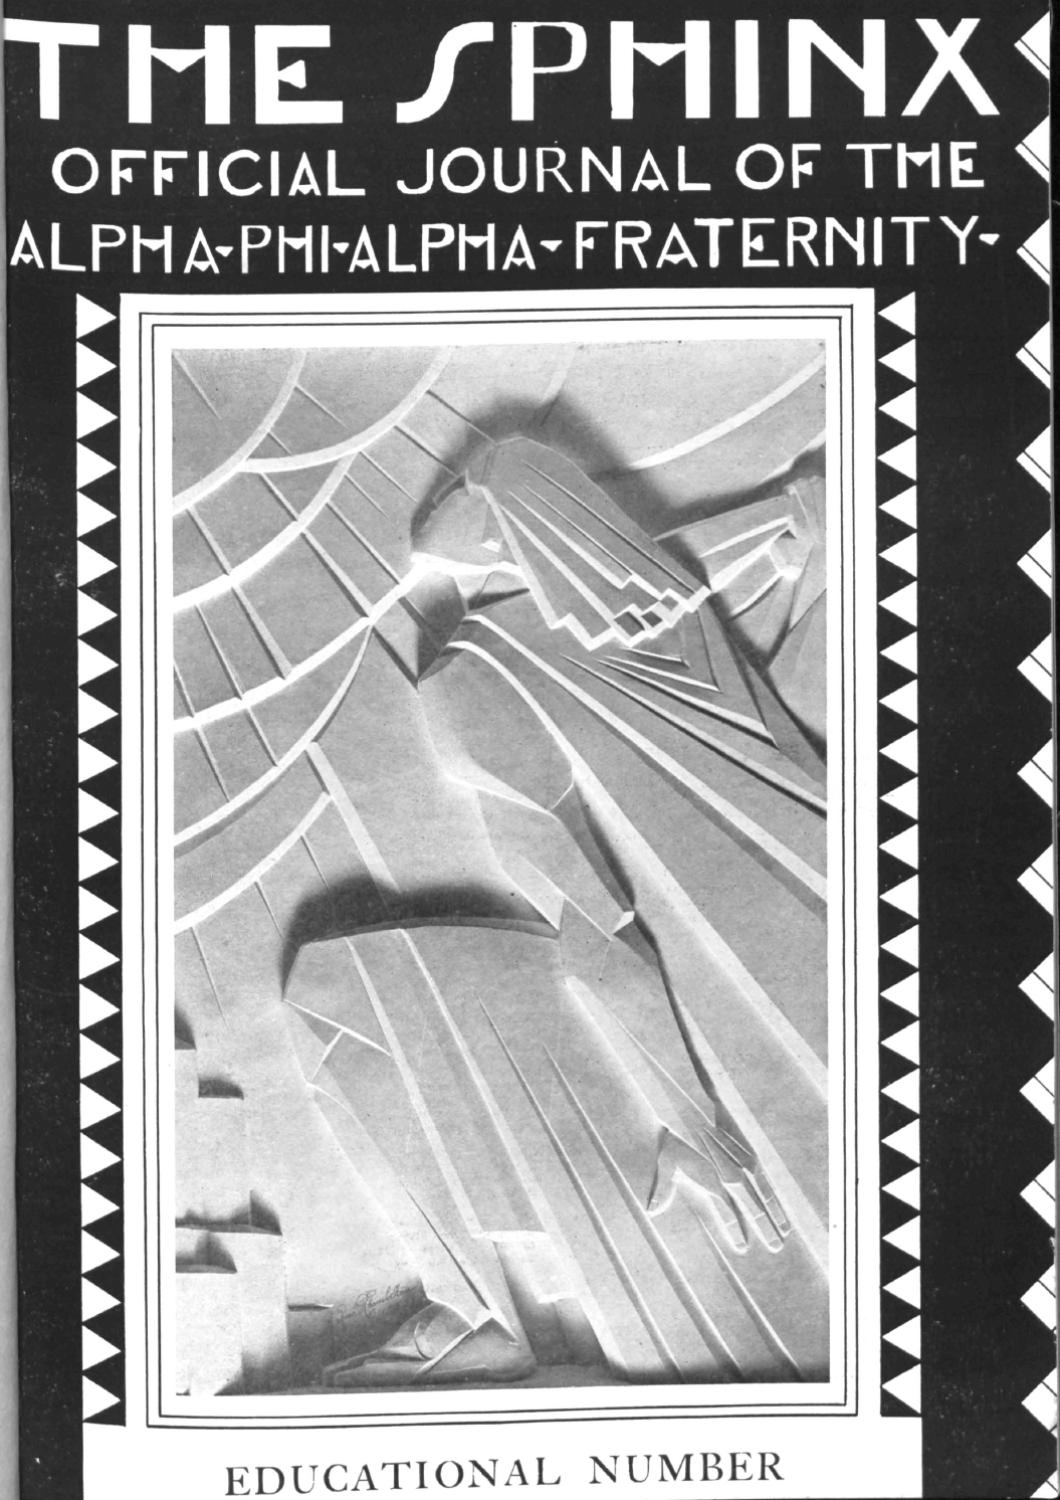 The sphinx spring april 1930 volume 16 number 2193001602 by the sphinx spring april 1930 volume 16 number 2193001602 by alpha phi alpha fraternity issuu biocorpaavc Gallery